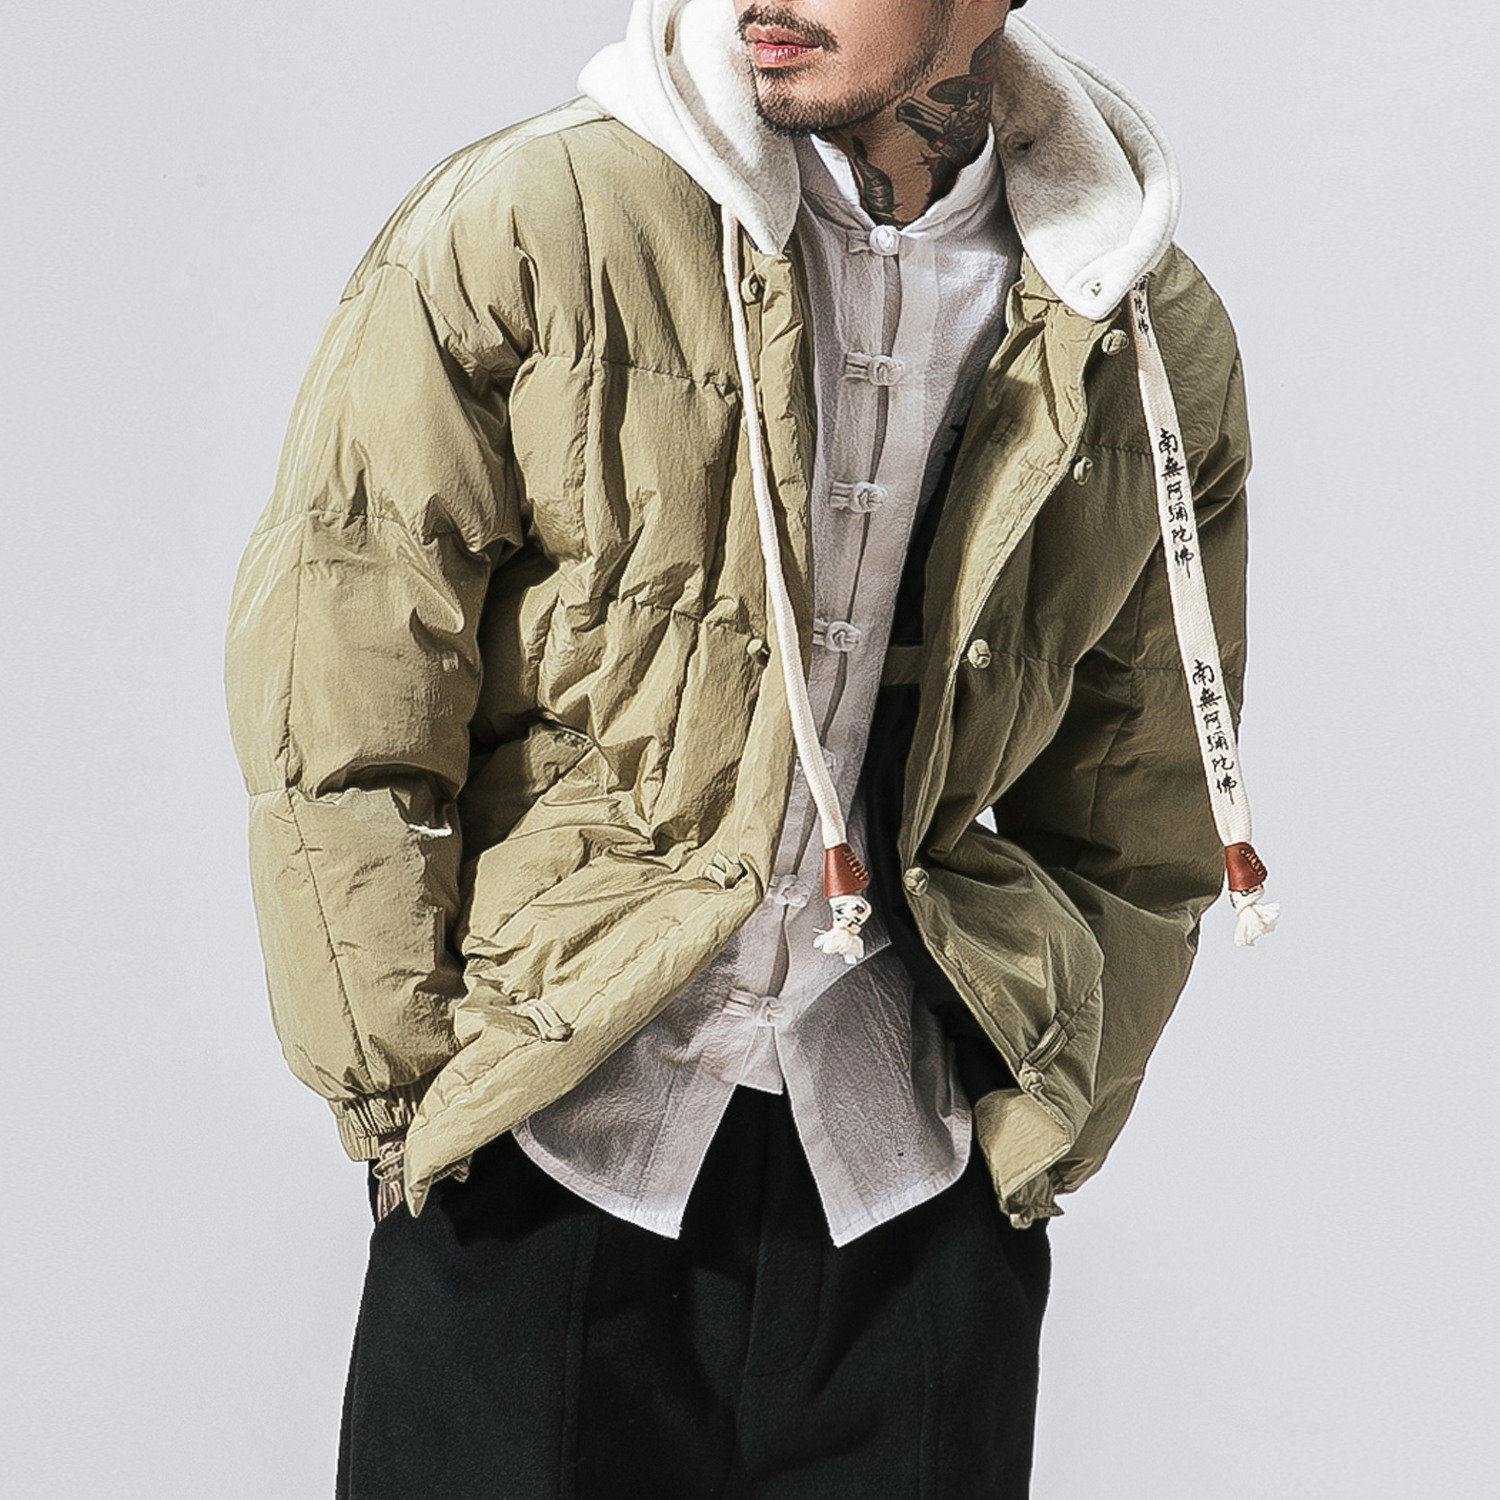 4 Colors Winter Loose Thicken Hooded Parkas Jacket Men Street Fashion Hip Hop Casual Warm Padded Cotton Coat Male Overcoat цены онлайн